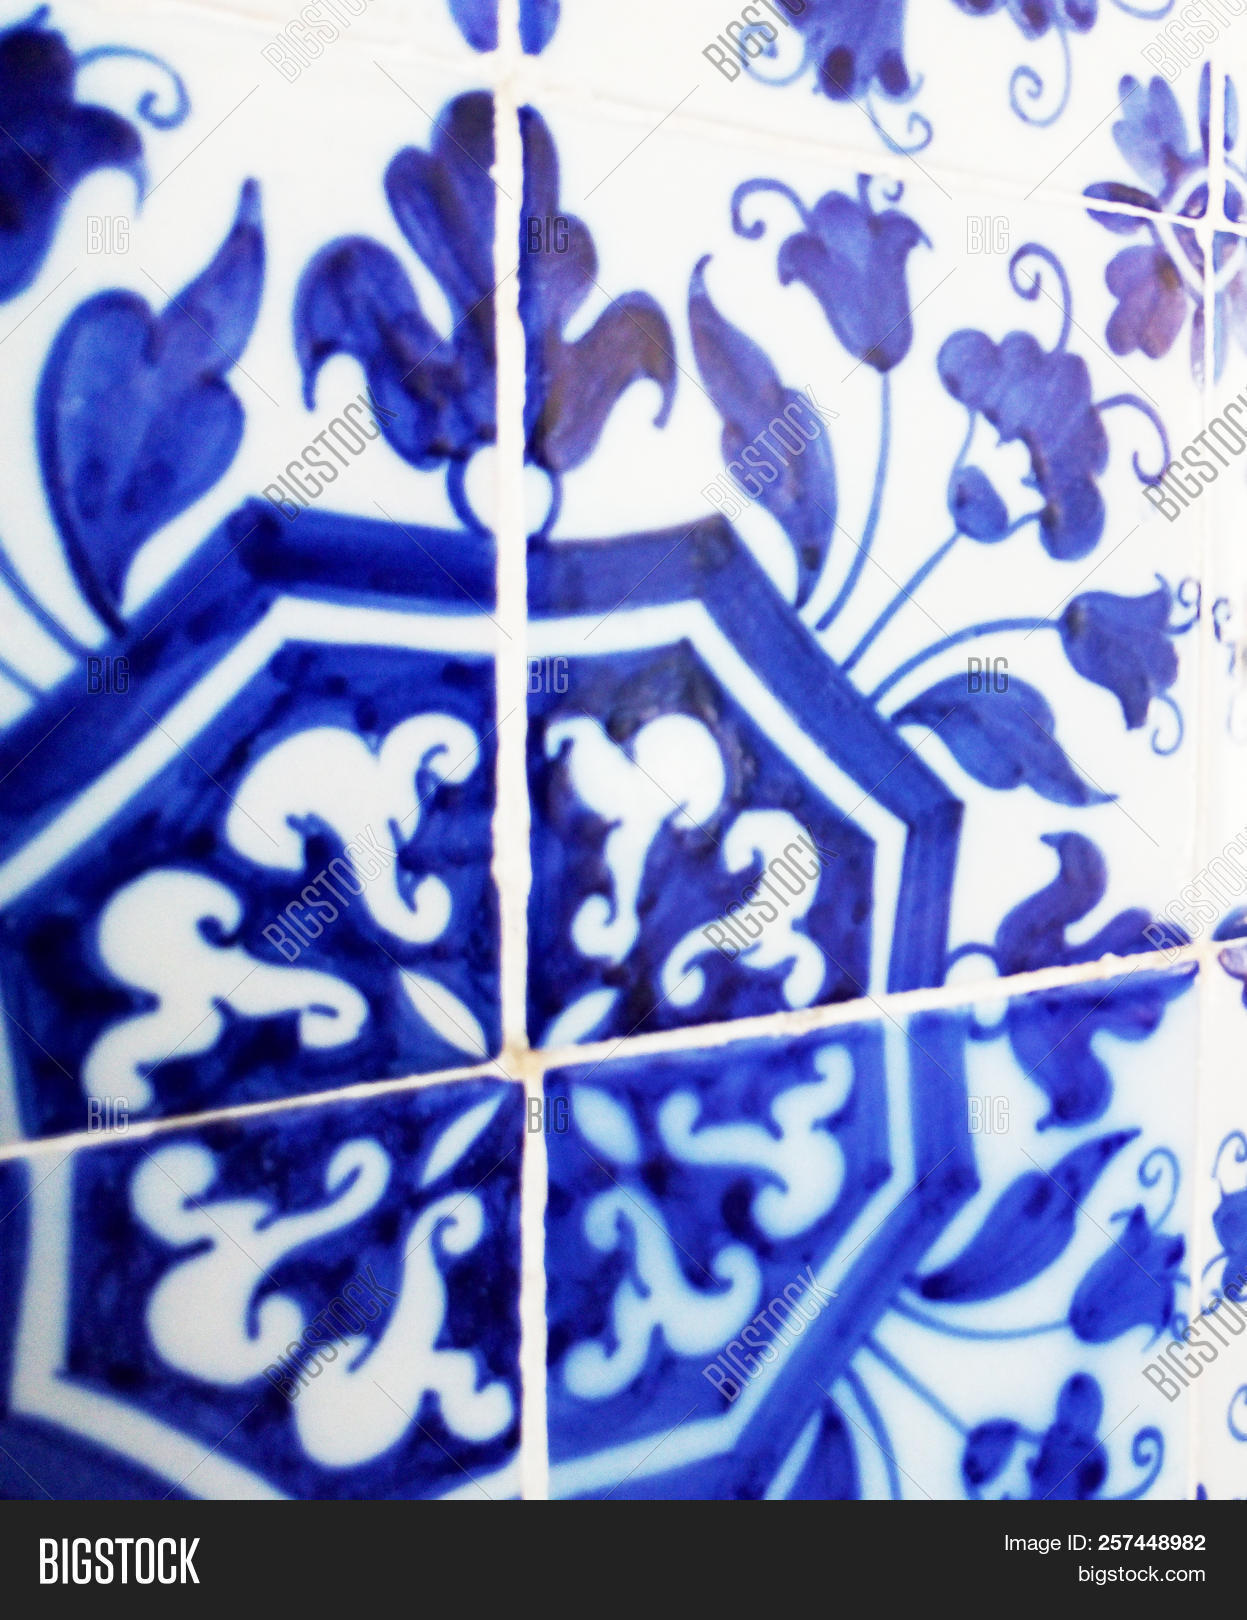 Mosaic Tiles Portugal Image Photo